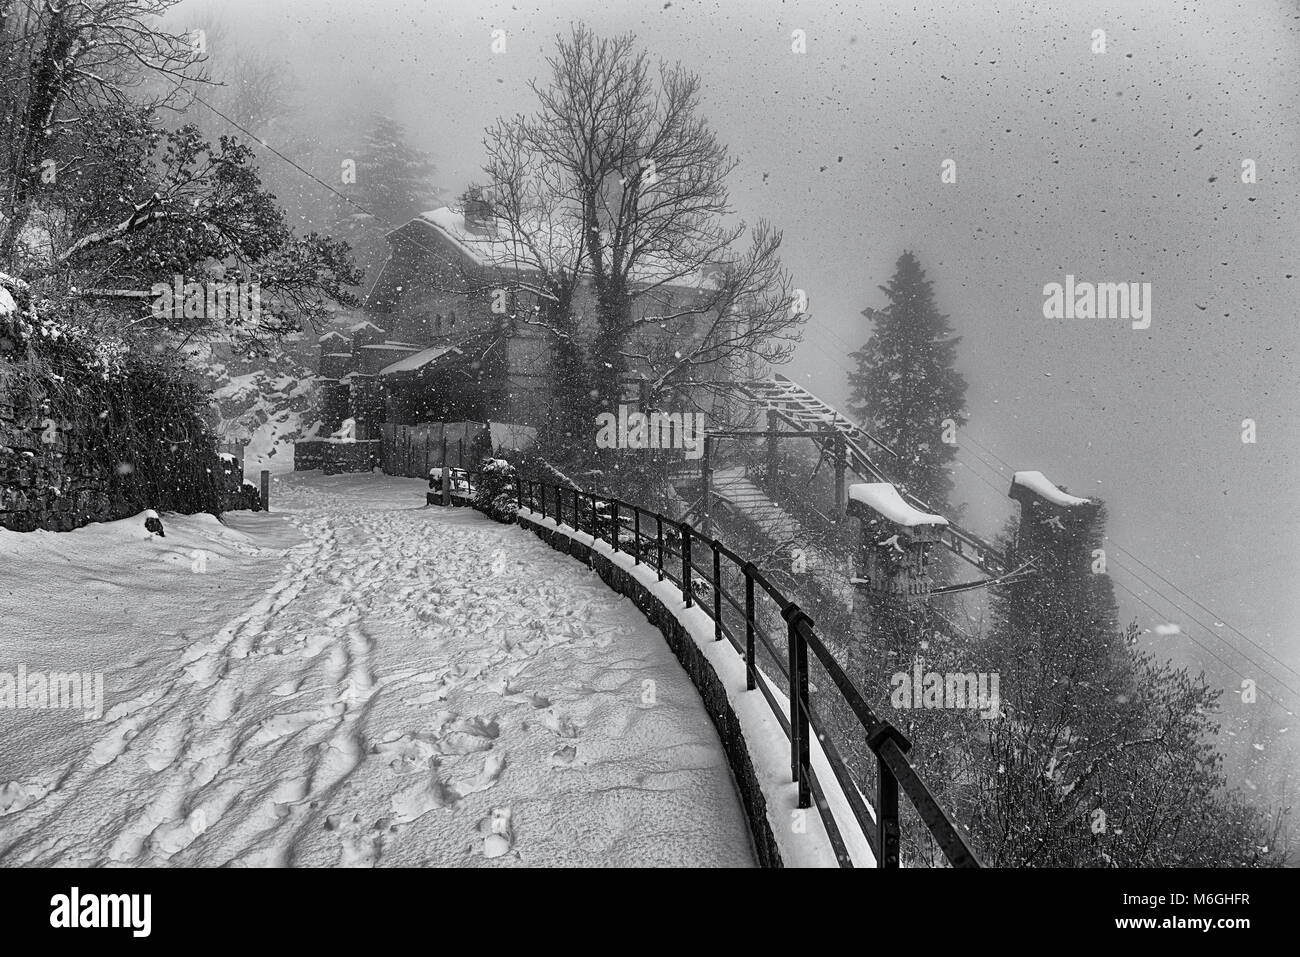 Ancient station of the funicular abandoned under the snow - Stock Image